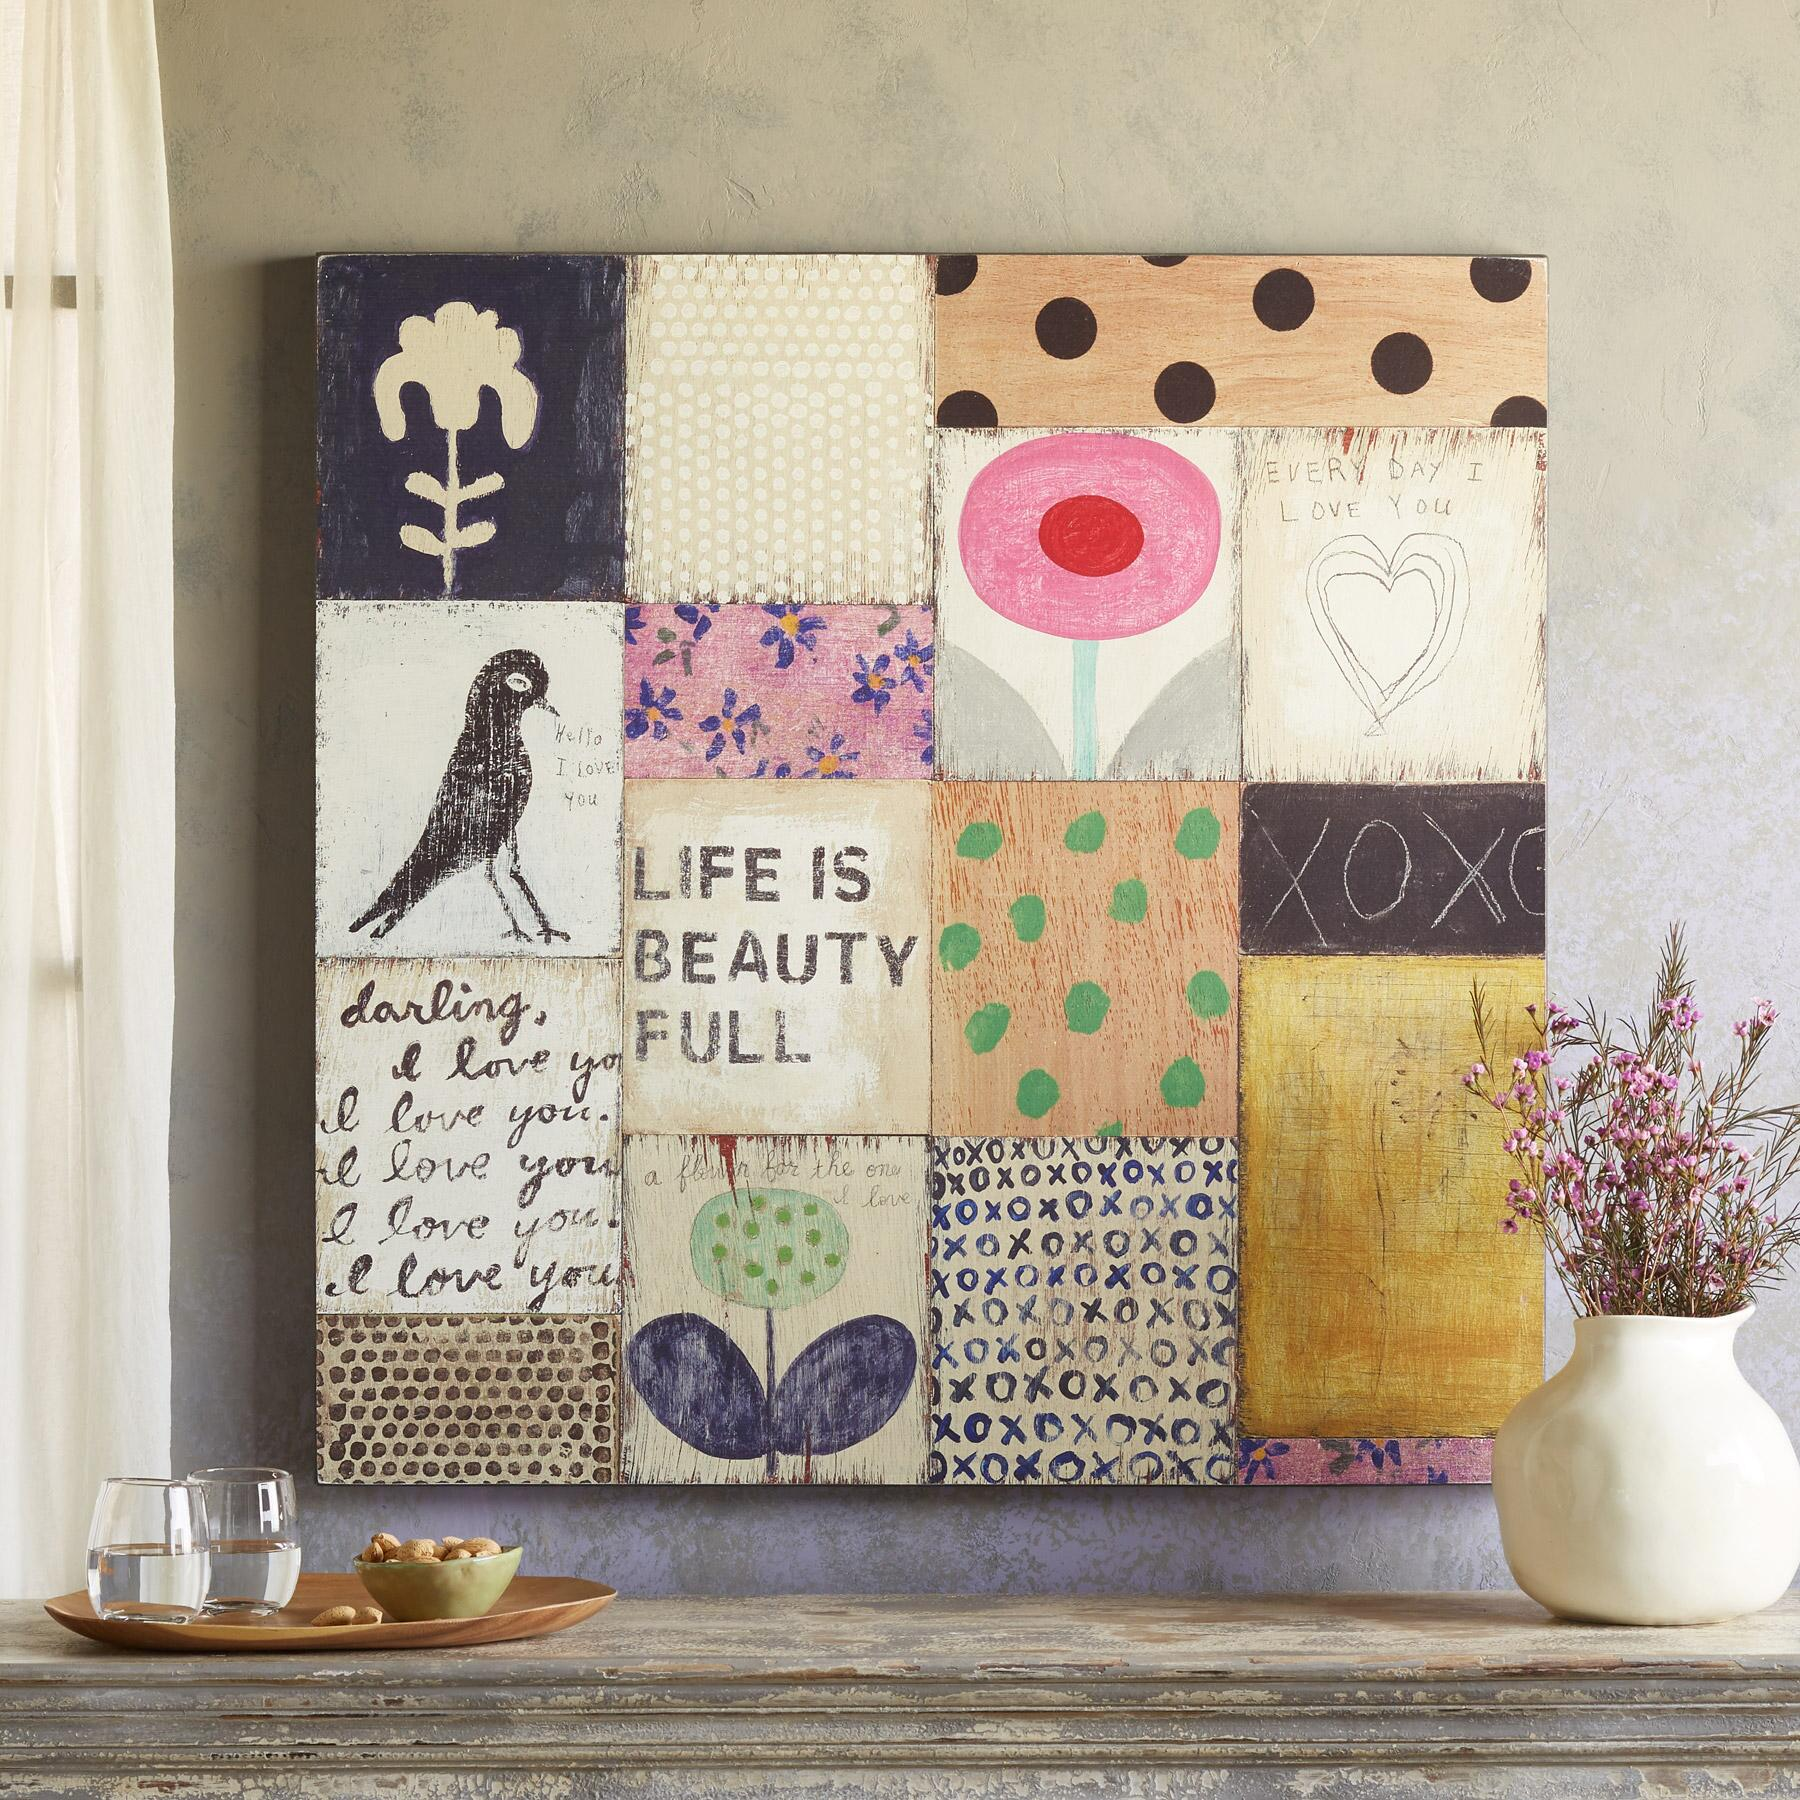 Patchwork Art Print Collage - Sundance Catalog Home Decor + A Few of My Artisan Favorite Things!